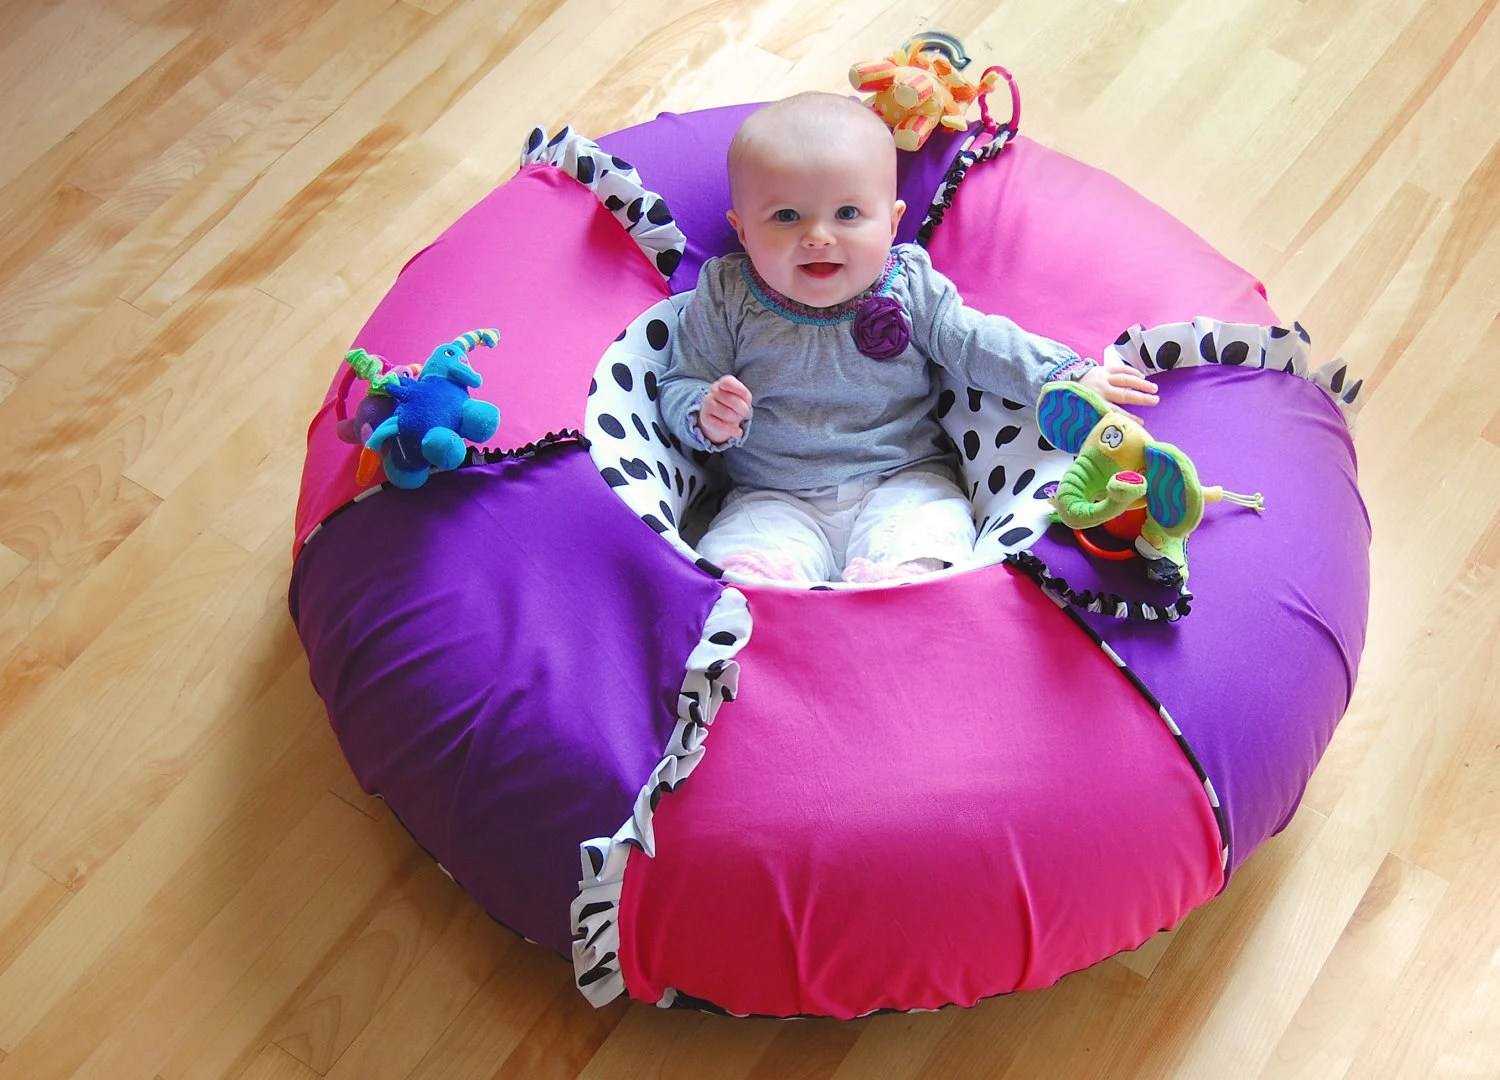 Baby Play Chair Baby Sit And Play Tube Sit Me Up Donut Inflatable Seat With